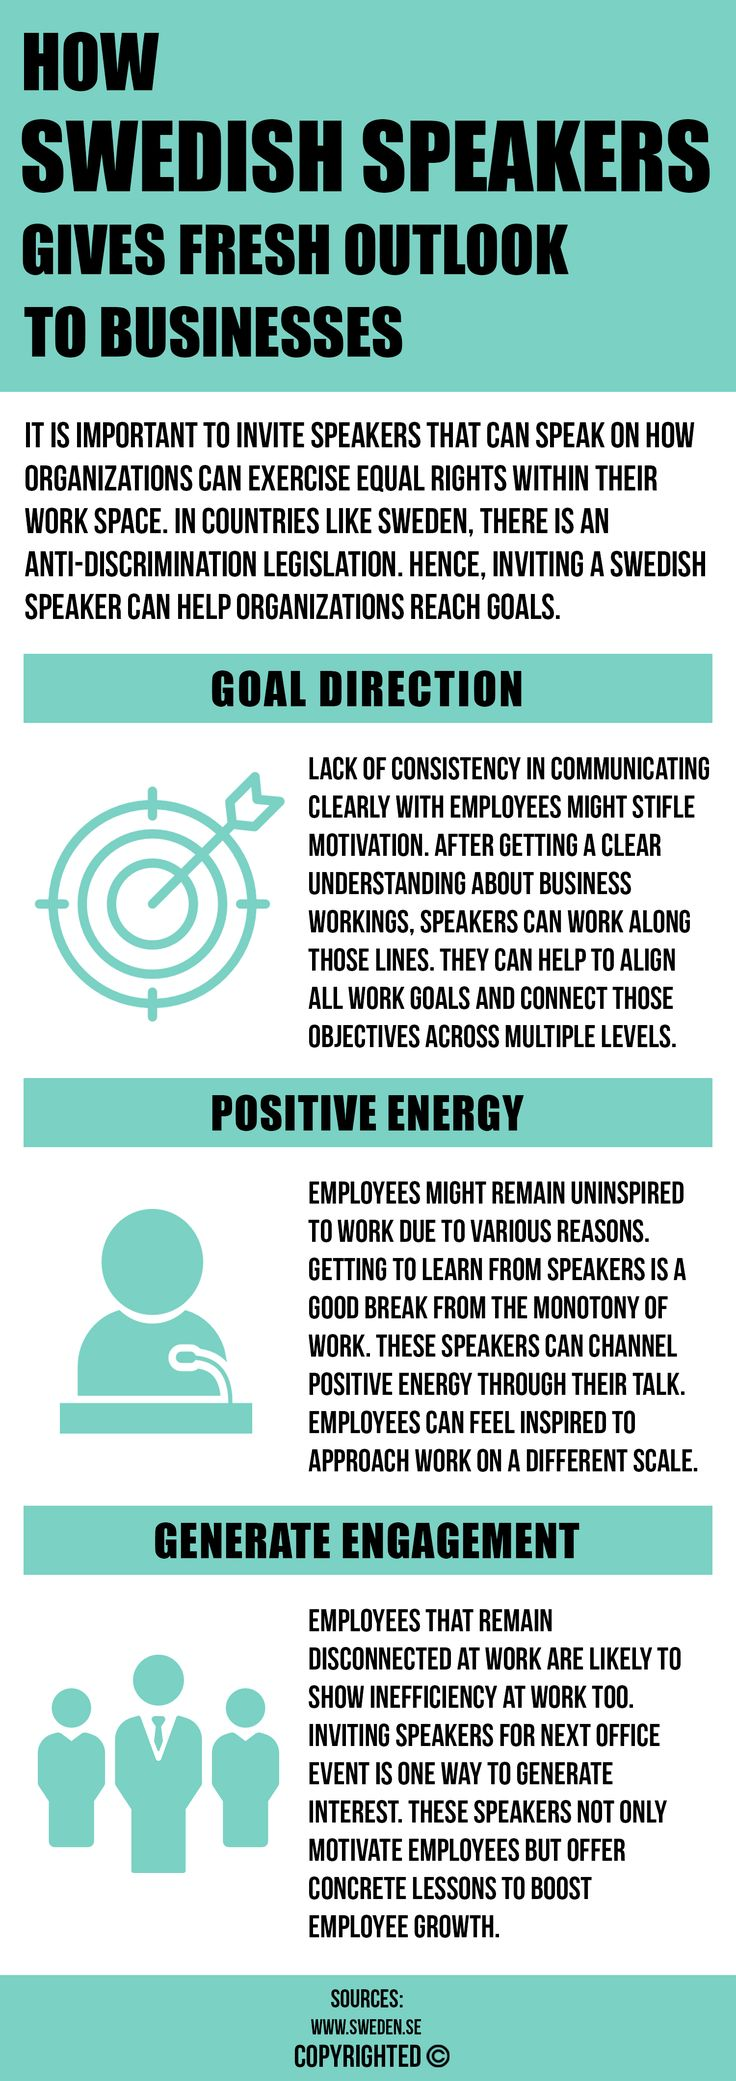 In countries like Sweden, there is an anti-discrimination legislation. Hence, inviting a Swedish speaker can help organizations reach goals. They can create a positive energy and generate engagement amongst employees to help meet their goals.